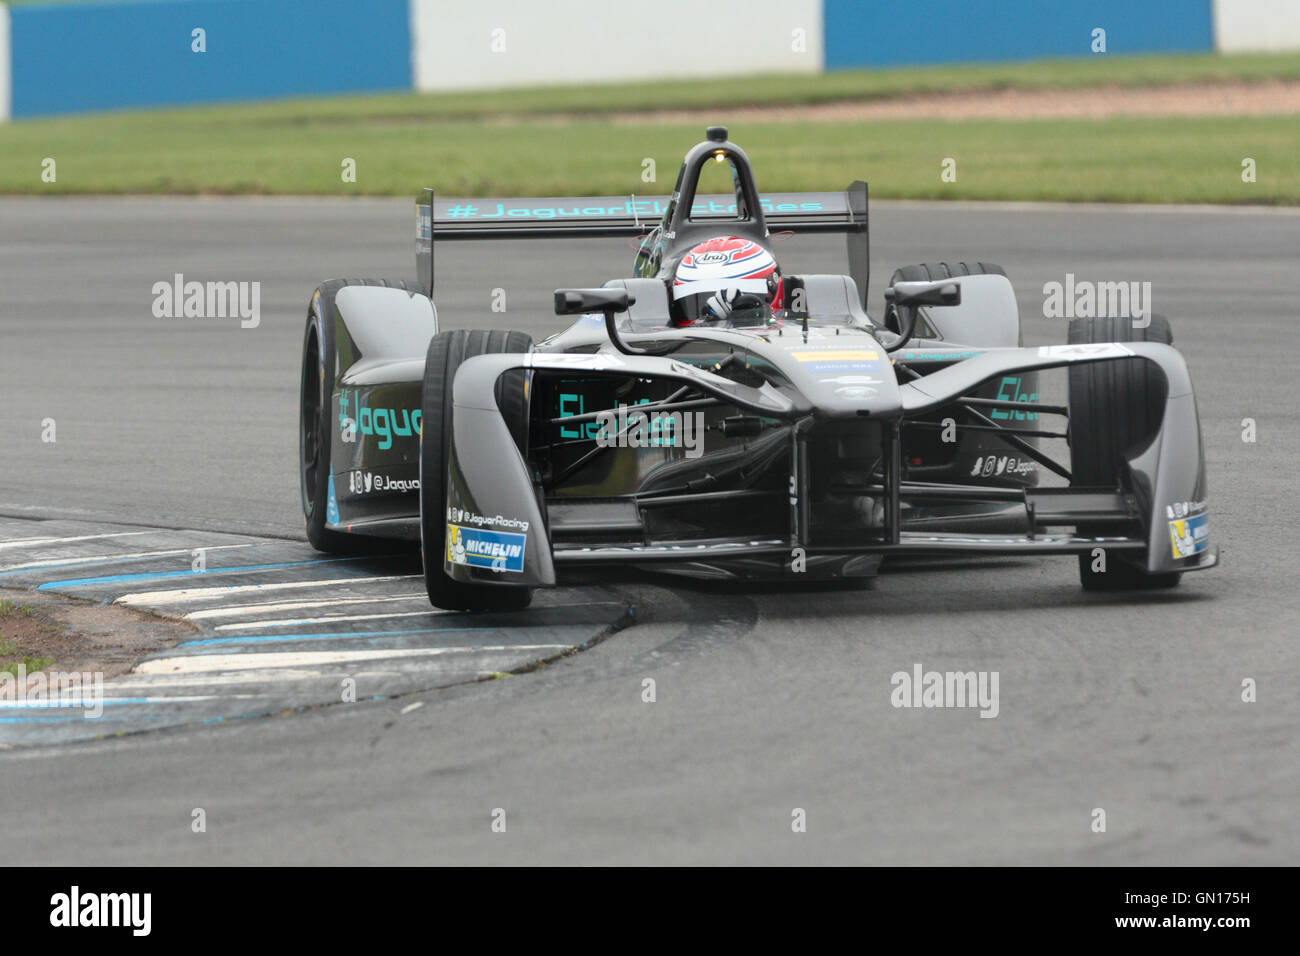 Adam Carroll driving during a testing day for the Formula E motor racing series.  Editorial use only. - Stock Image